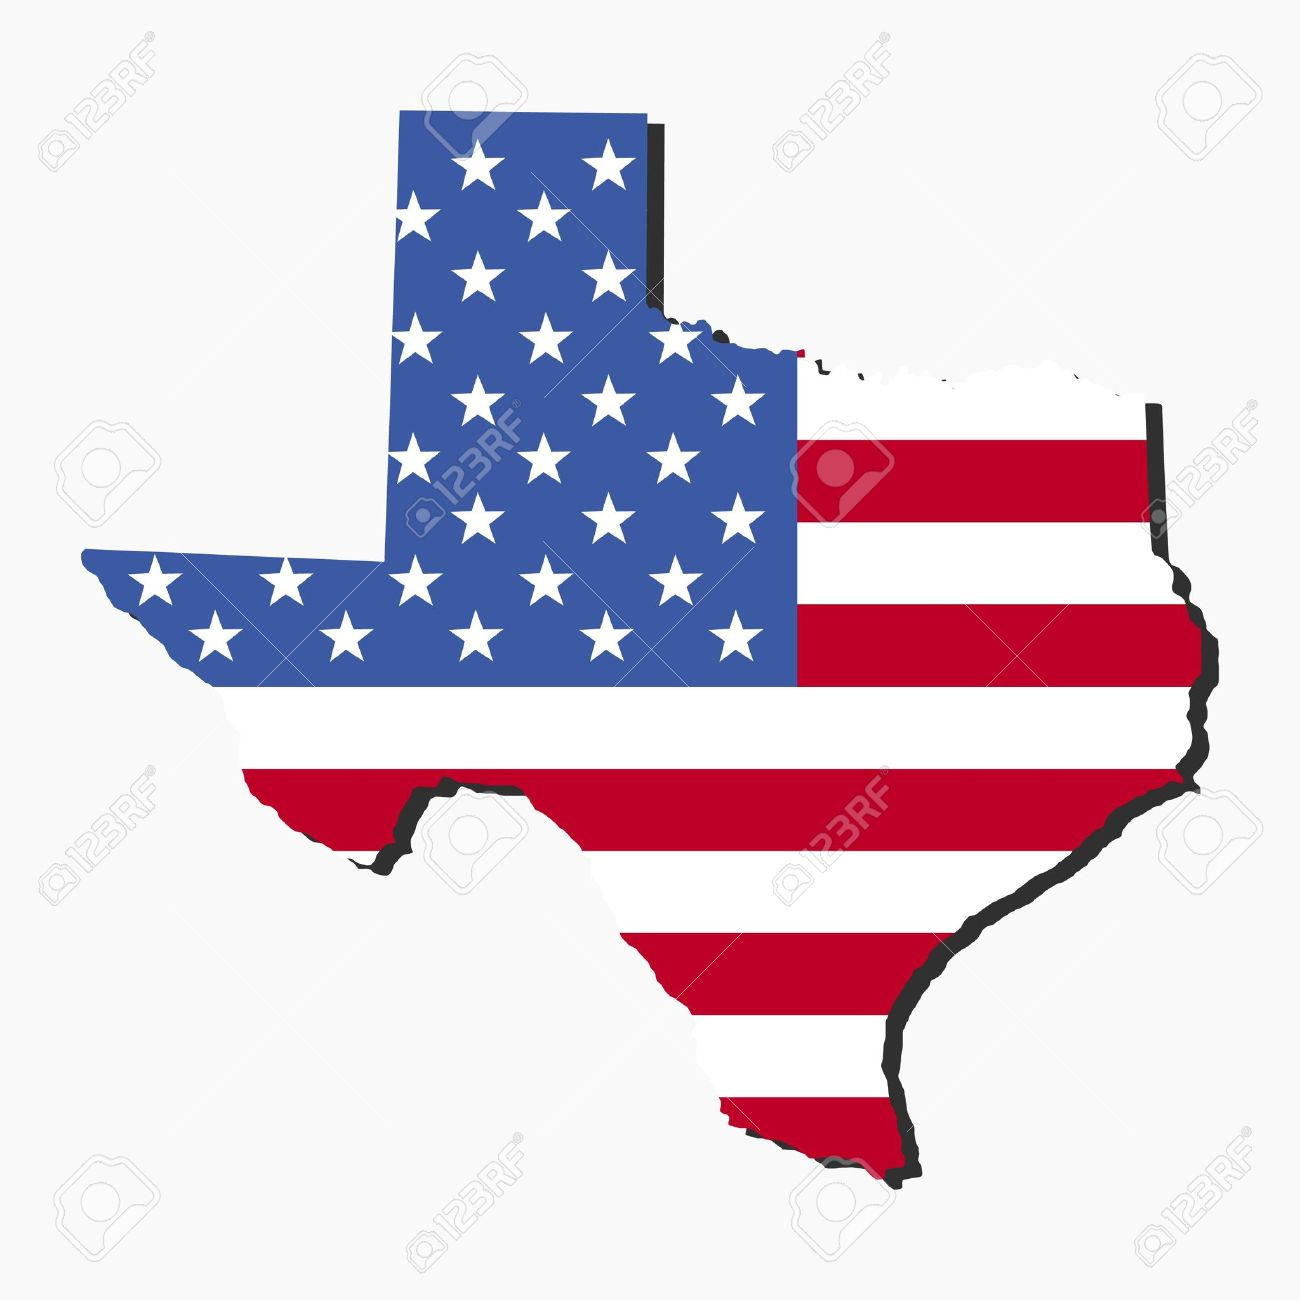 Map Of The State Of Texas And American Flag Illustration Stock Photo - Texas Flag Map